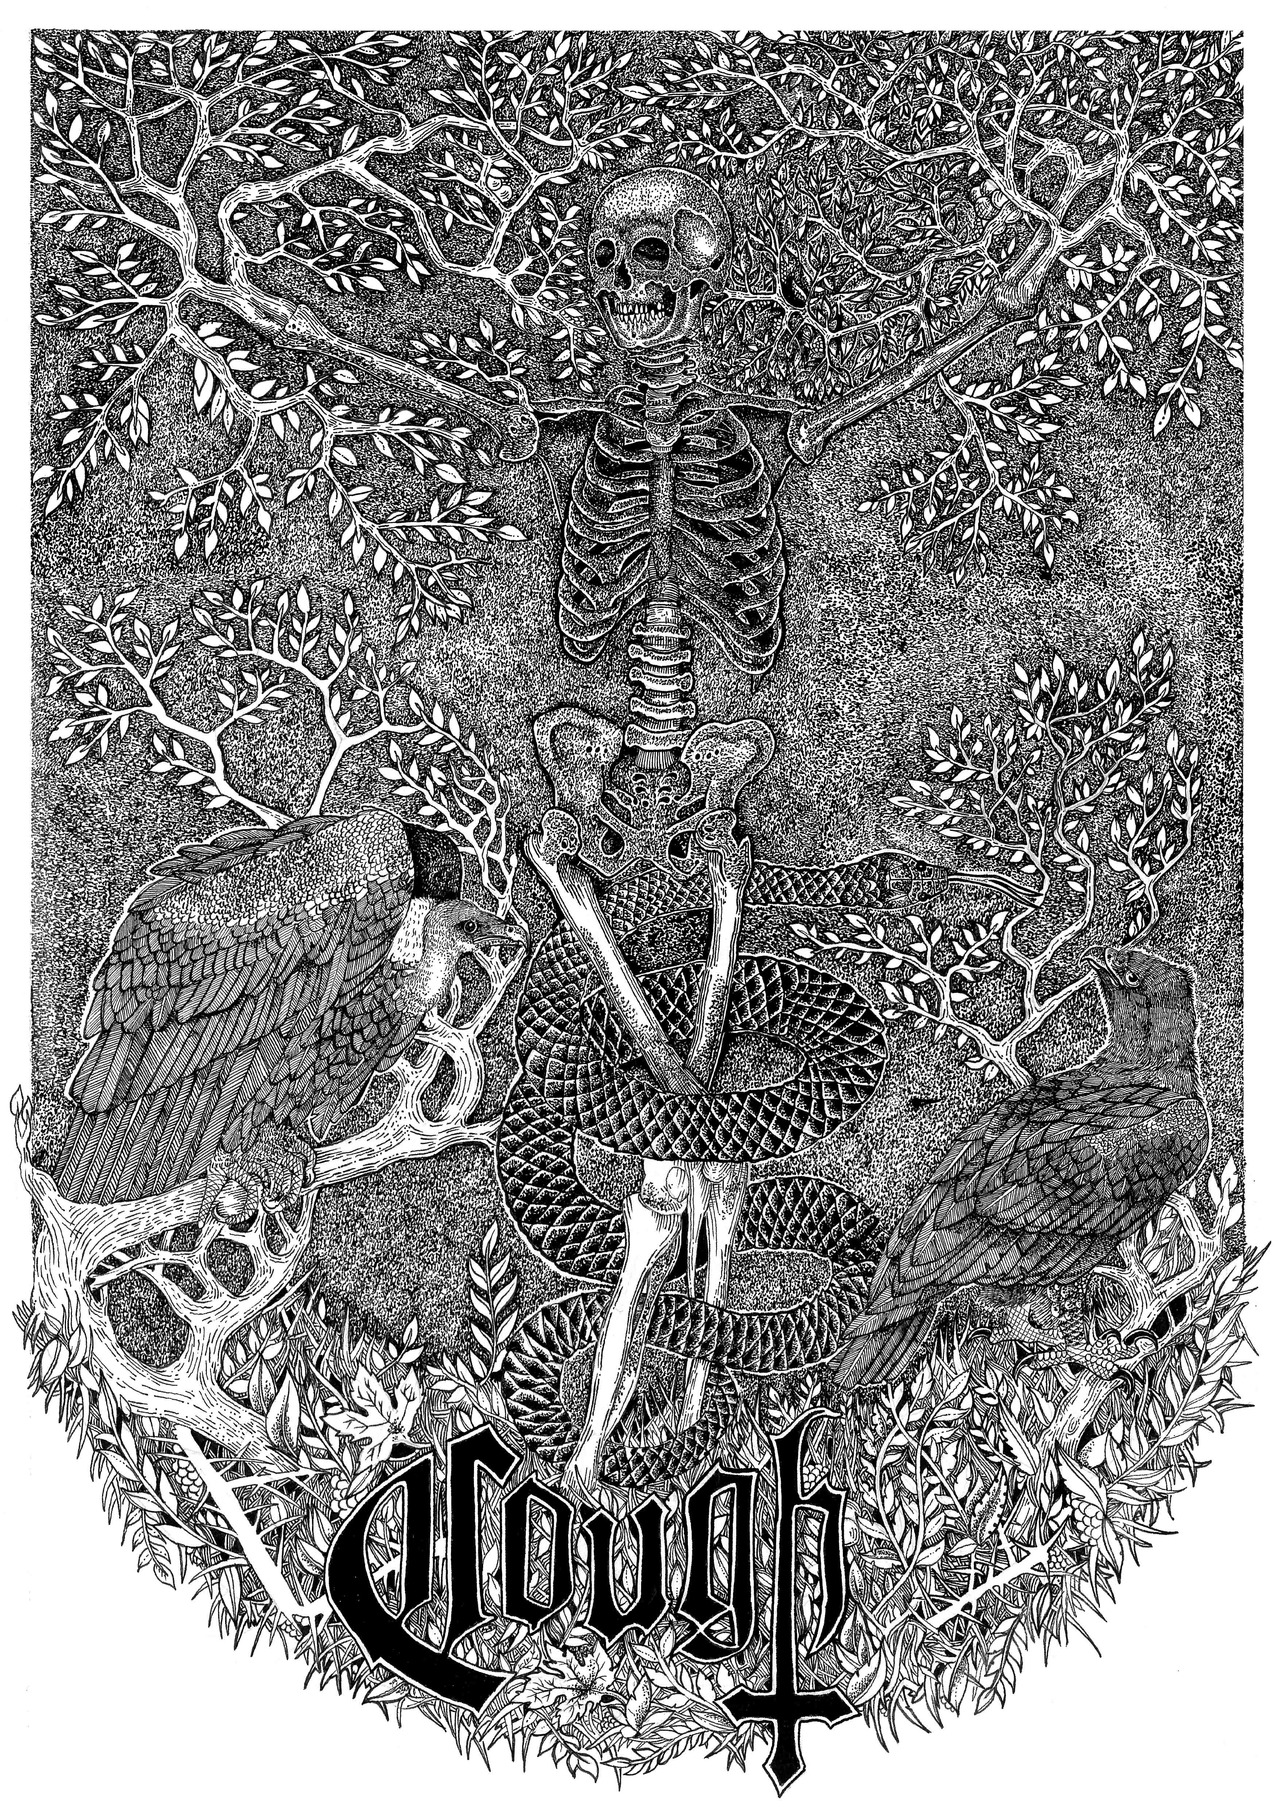 "sin-eater: Here is the full art work for COUGH. The artwork will be available on merch for their forth coming tour. ""The Tree of Knowledge"" pen and ink Sin Eater 2013"